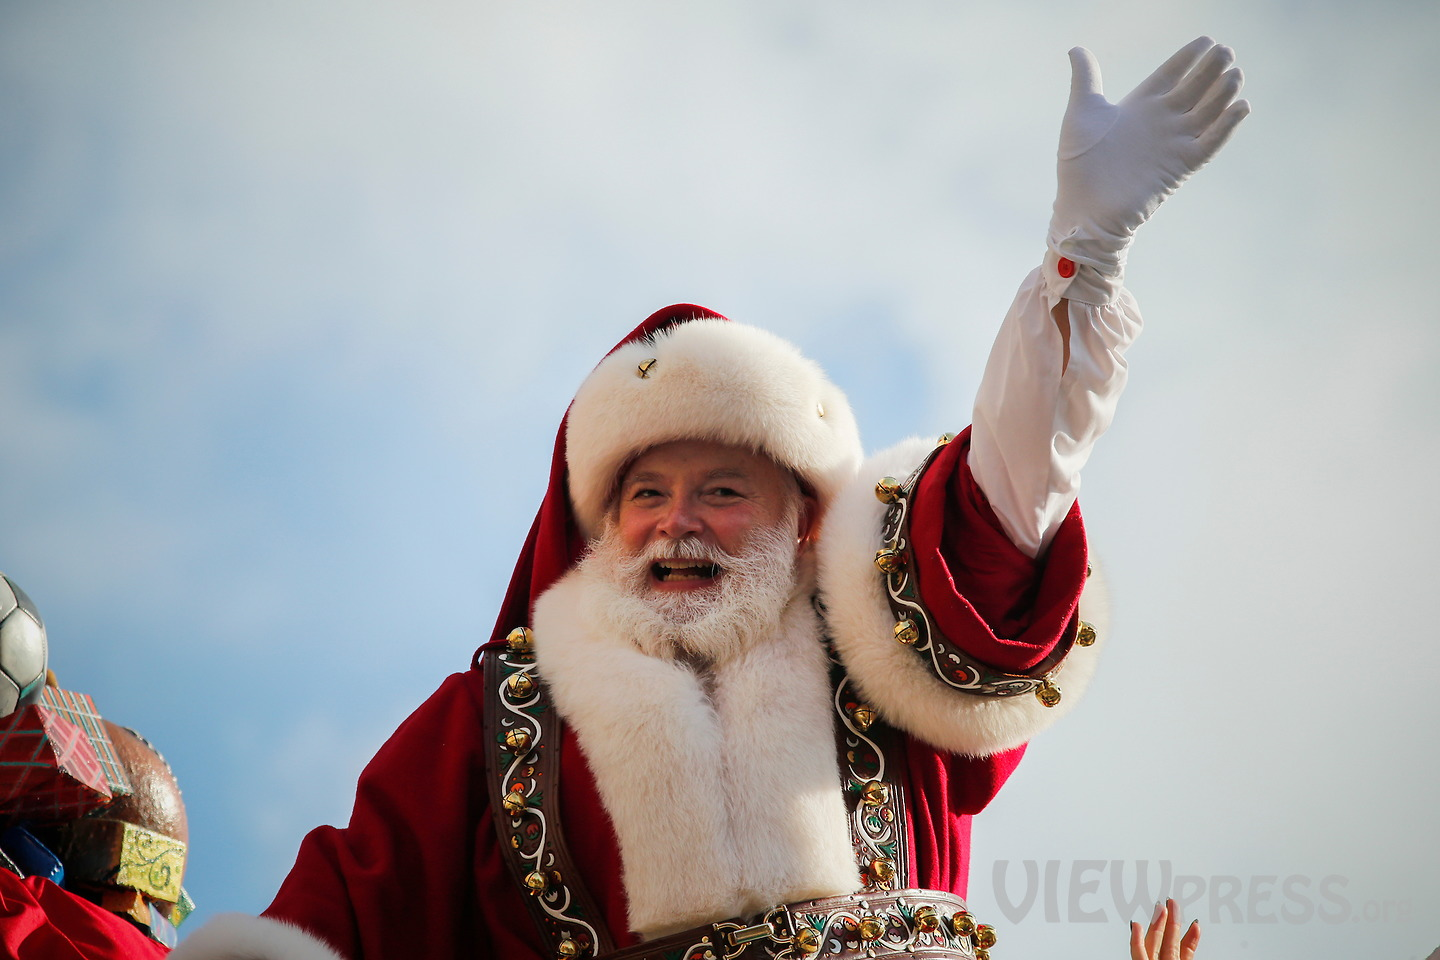 89th Macy's Thanksgiving Annual Day Parade highlights in New York